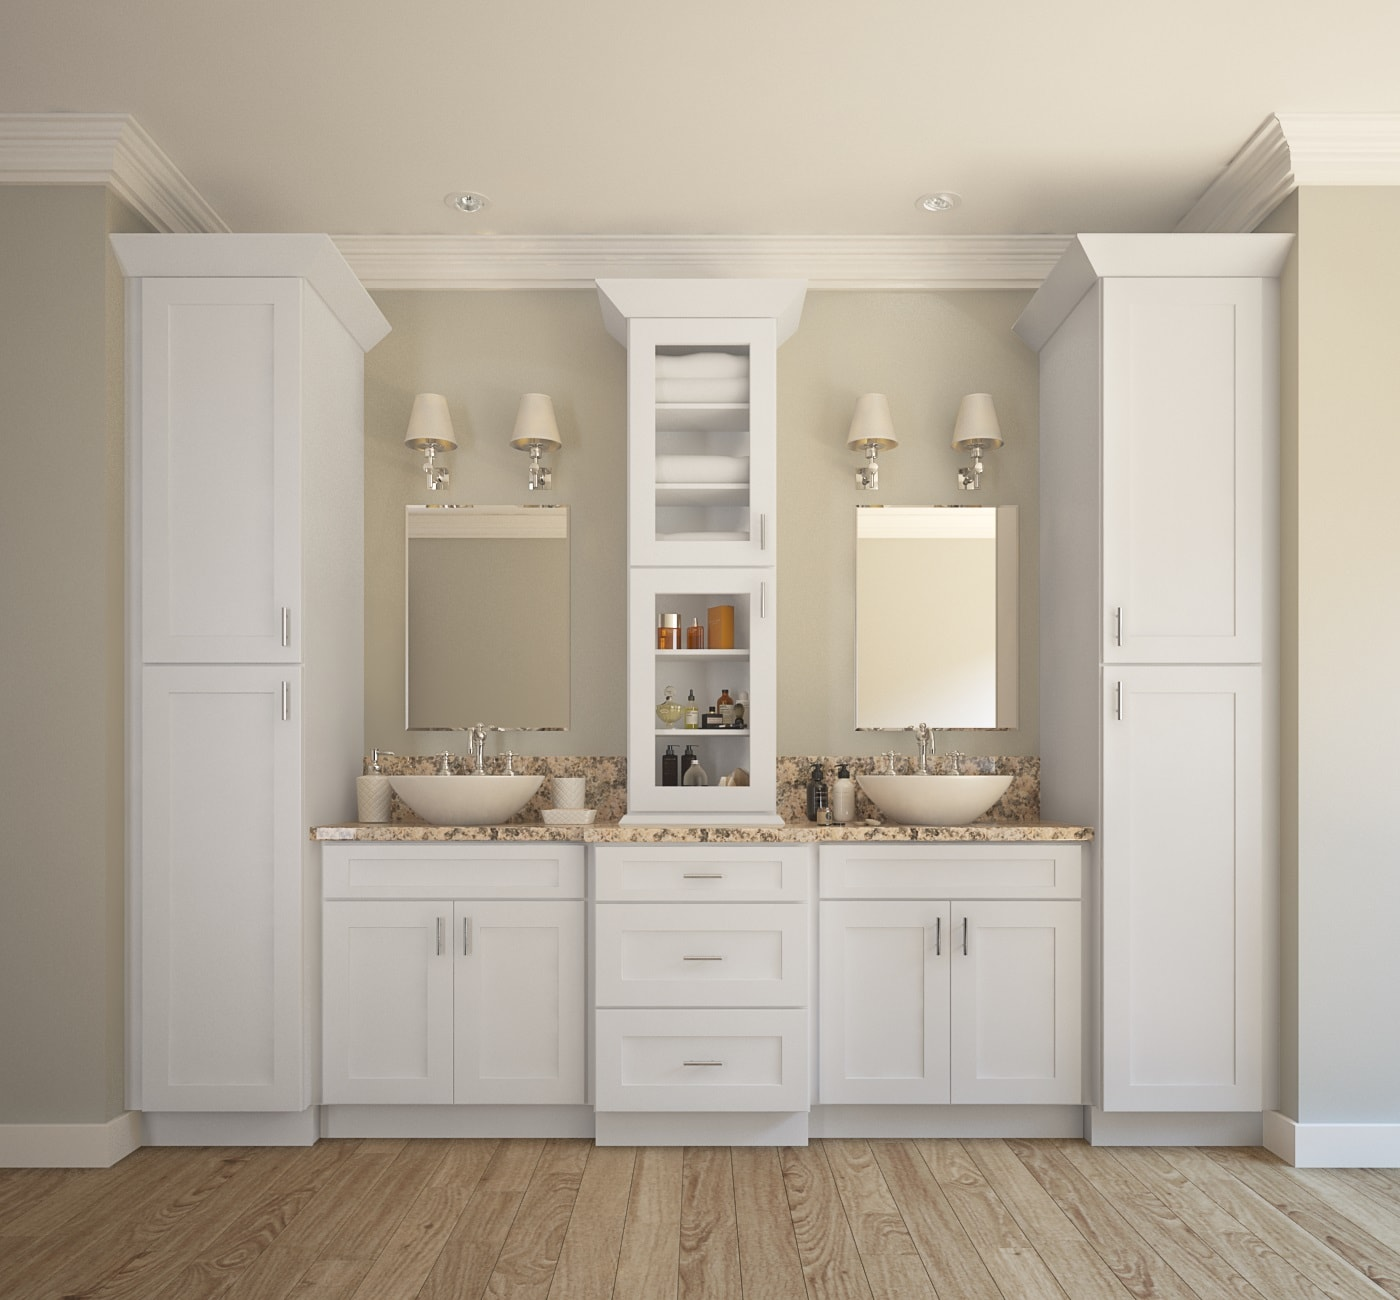 Aspen%2520White%2520Shaker%2520Bathroom%2520Vanity